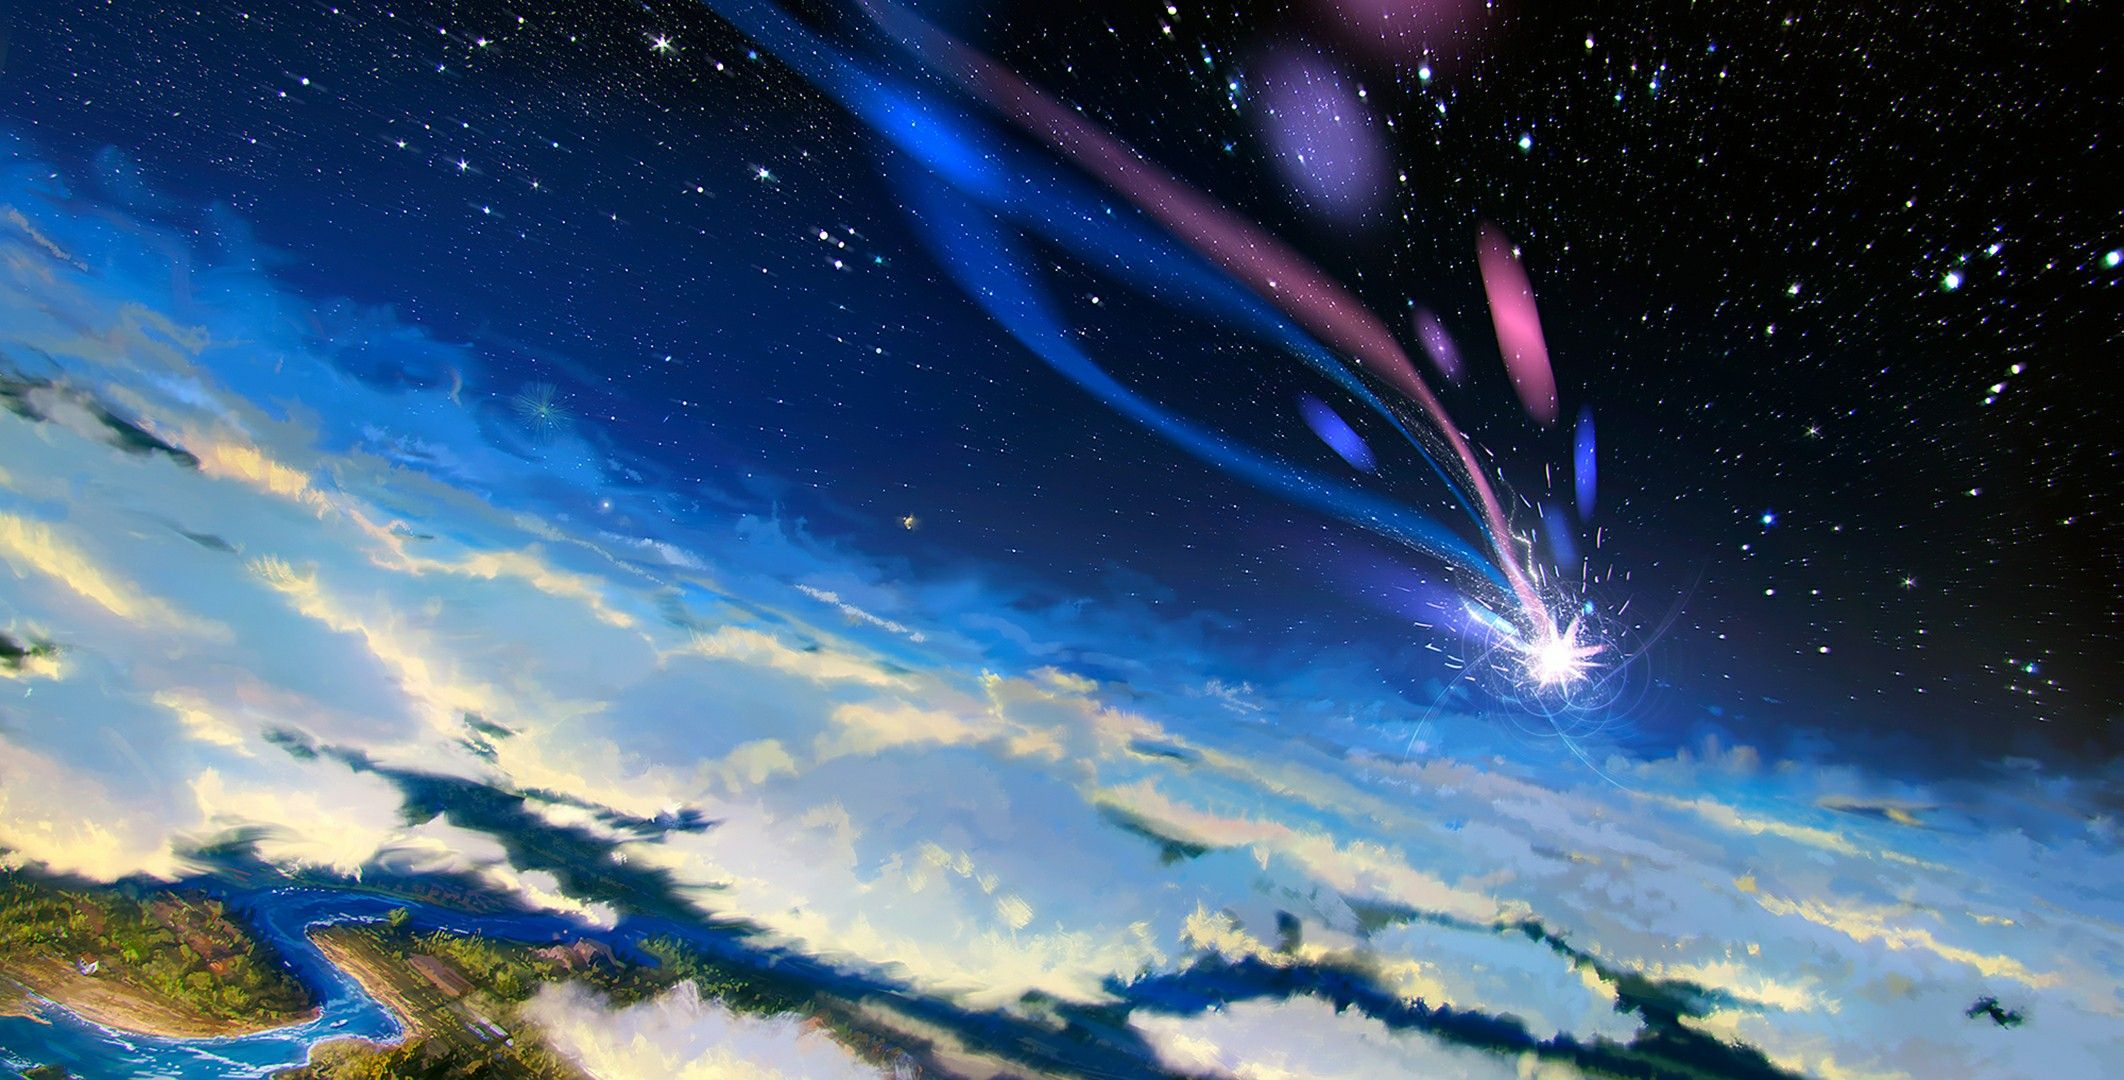 Shooting Star Howls Moving Castle Howls Moving Castle Wallpaper Howls Moving Castle Castle Pictures